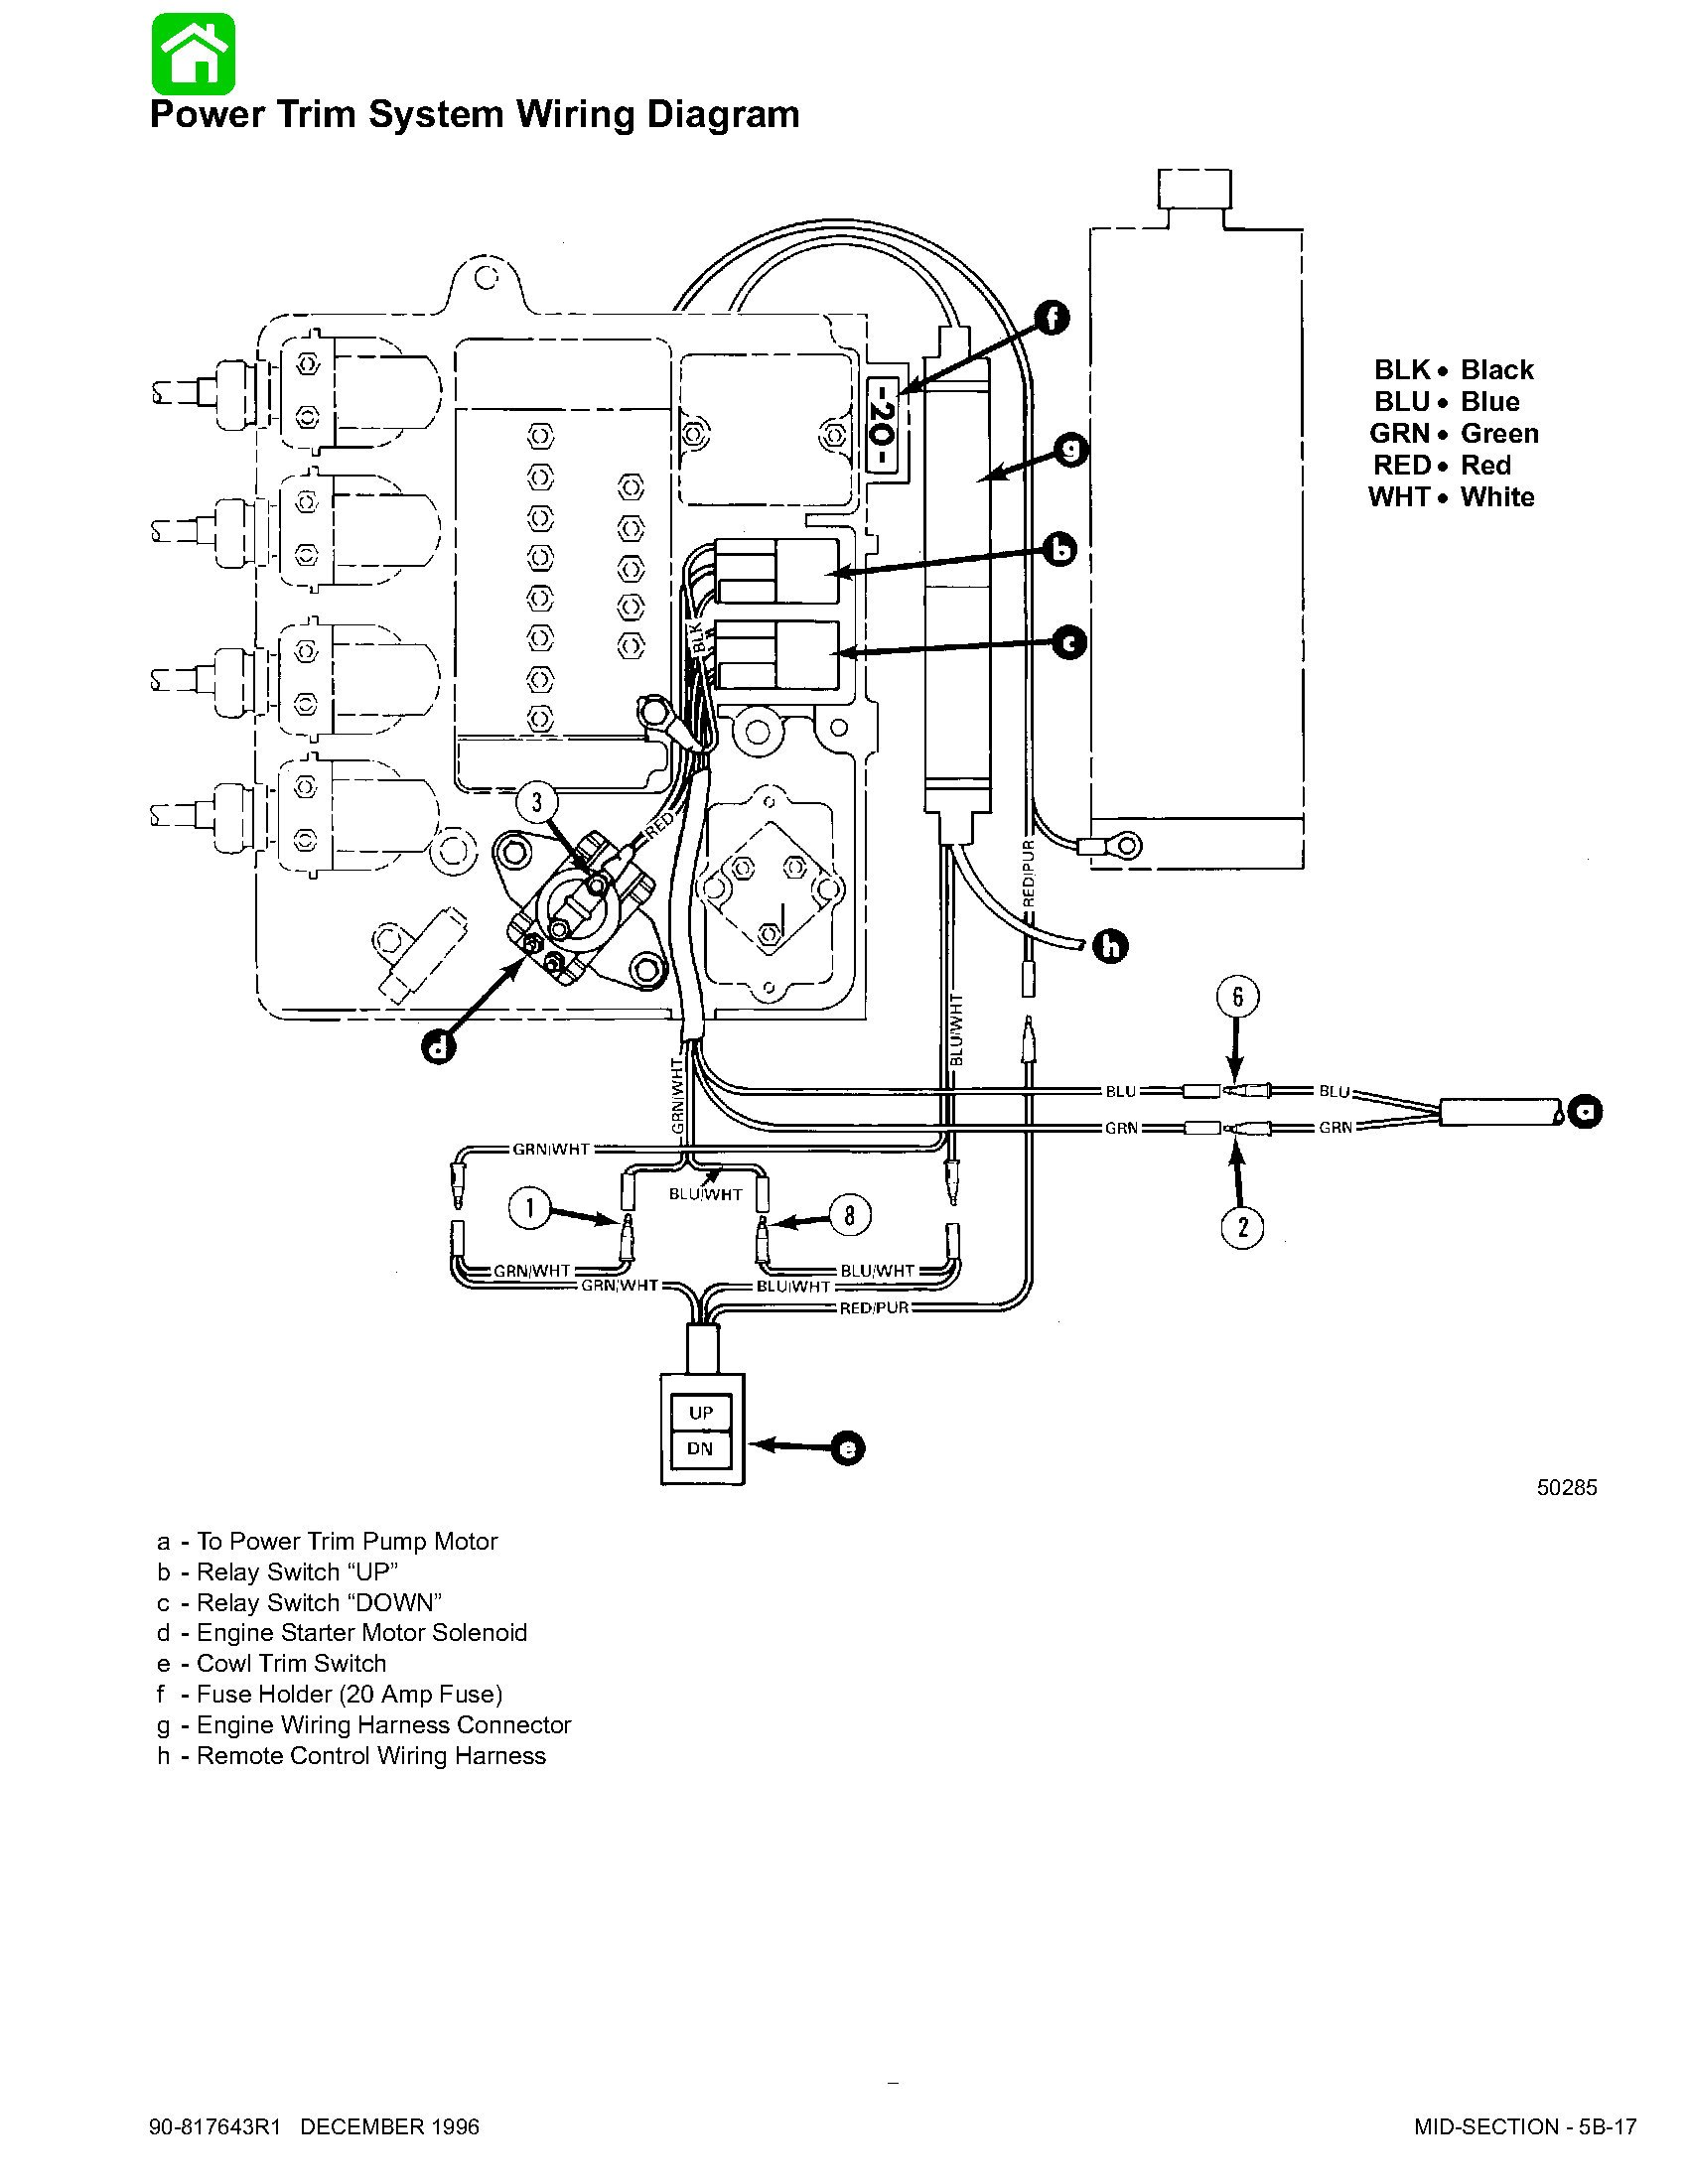 Mercury 60 Efi Bigfoot Wiring Diagram Heydouga 4140 065 Hd Boat Battery  Hookup Diagrams Mercury Bigfoot Wiring Diagram